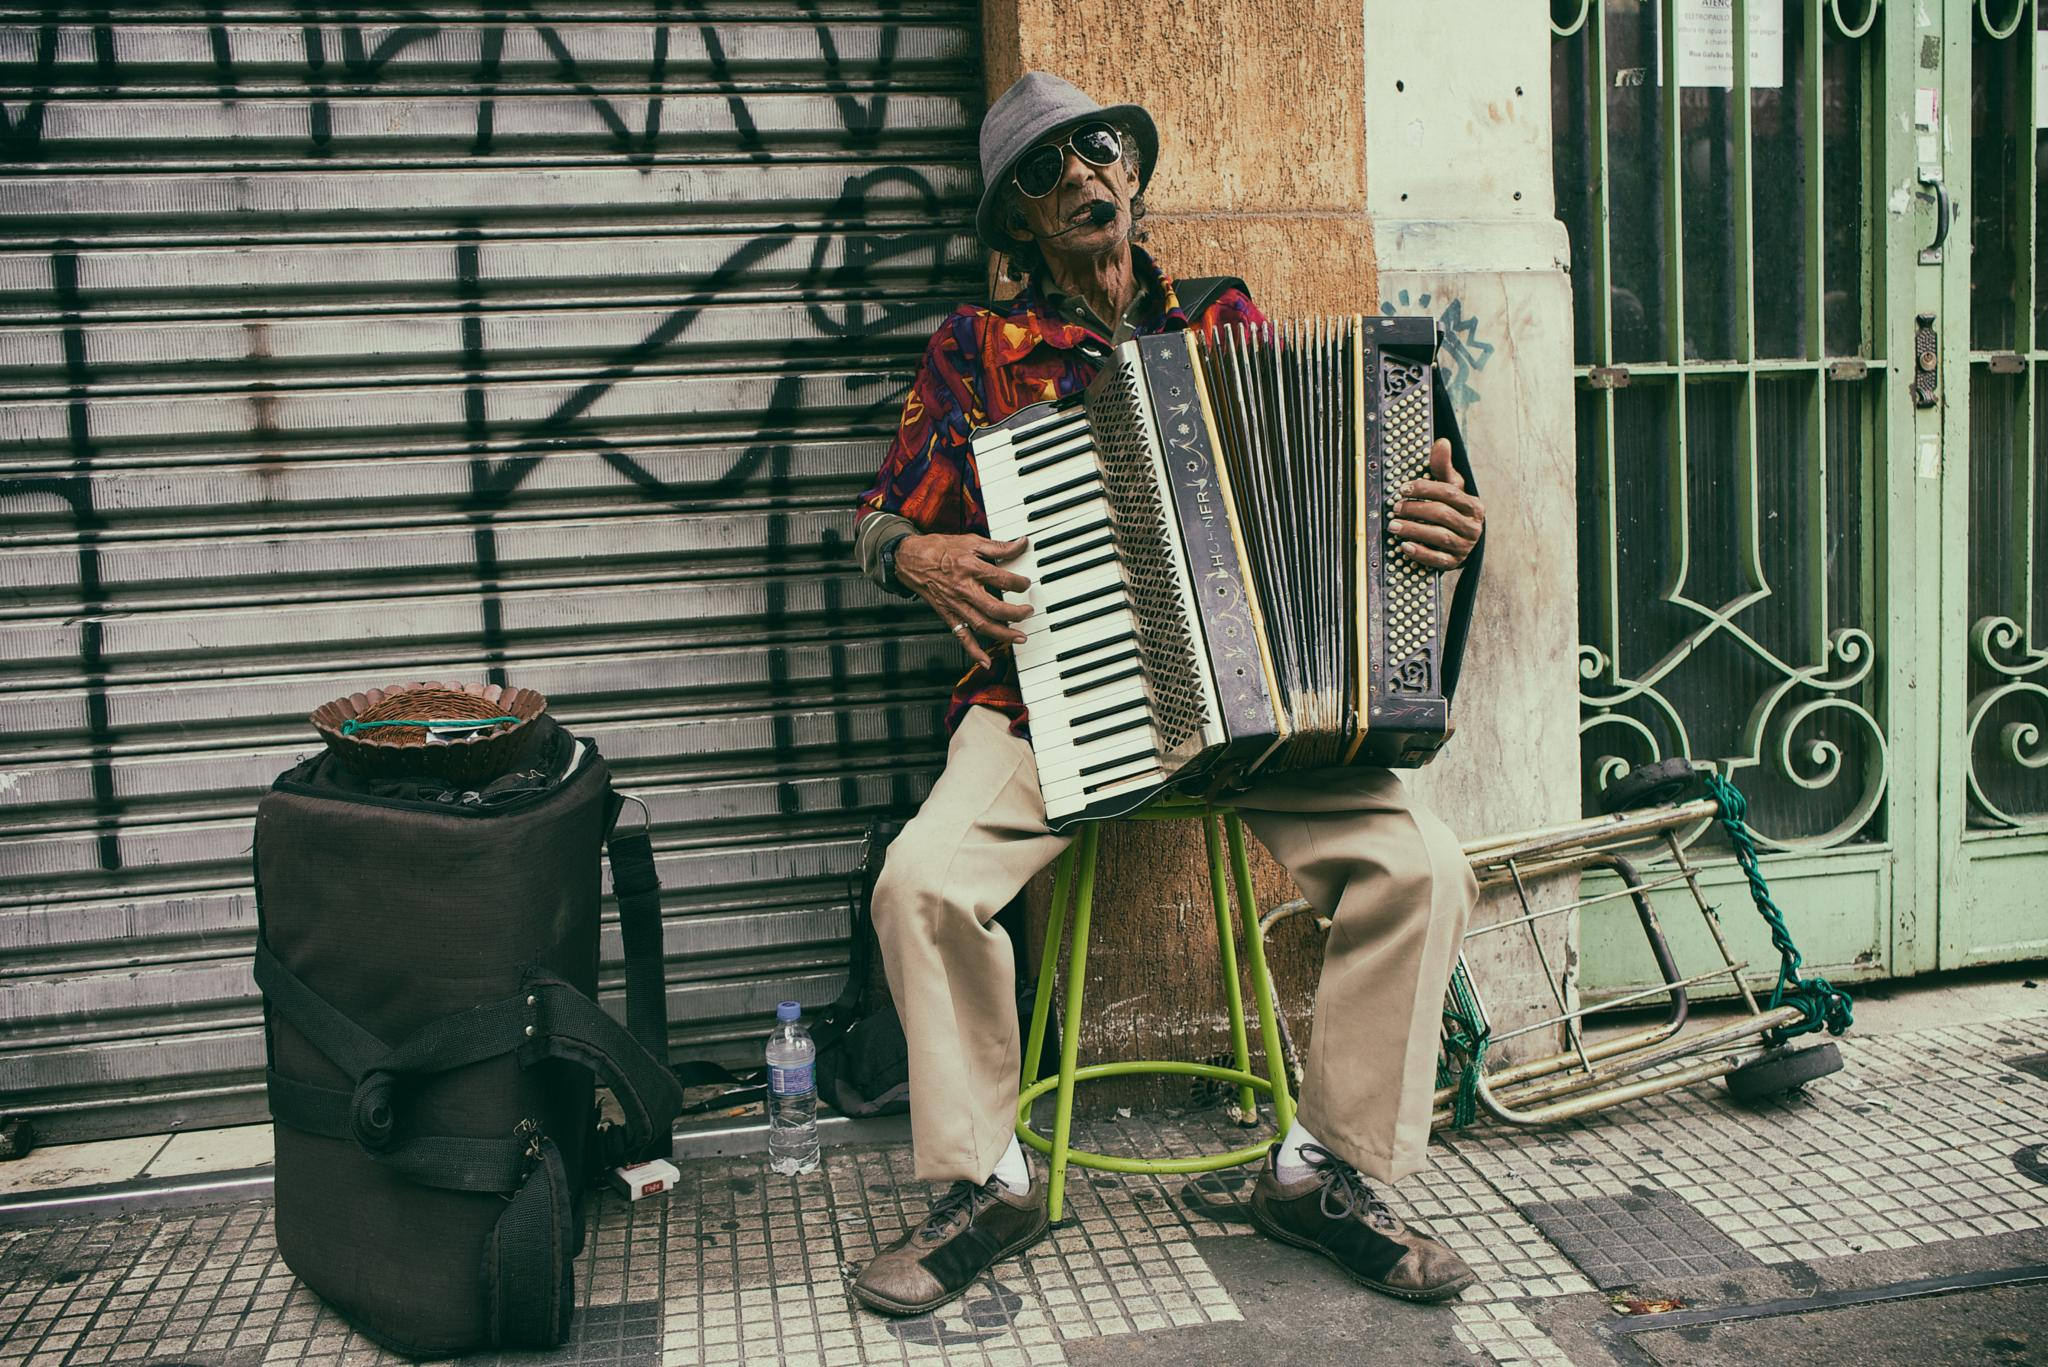 street life 2014 by andré figueiredo